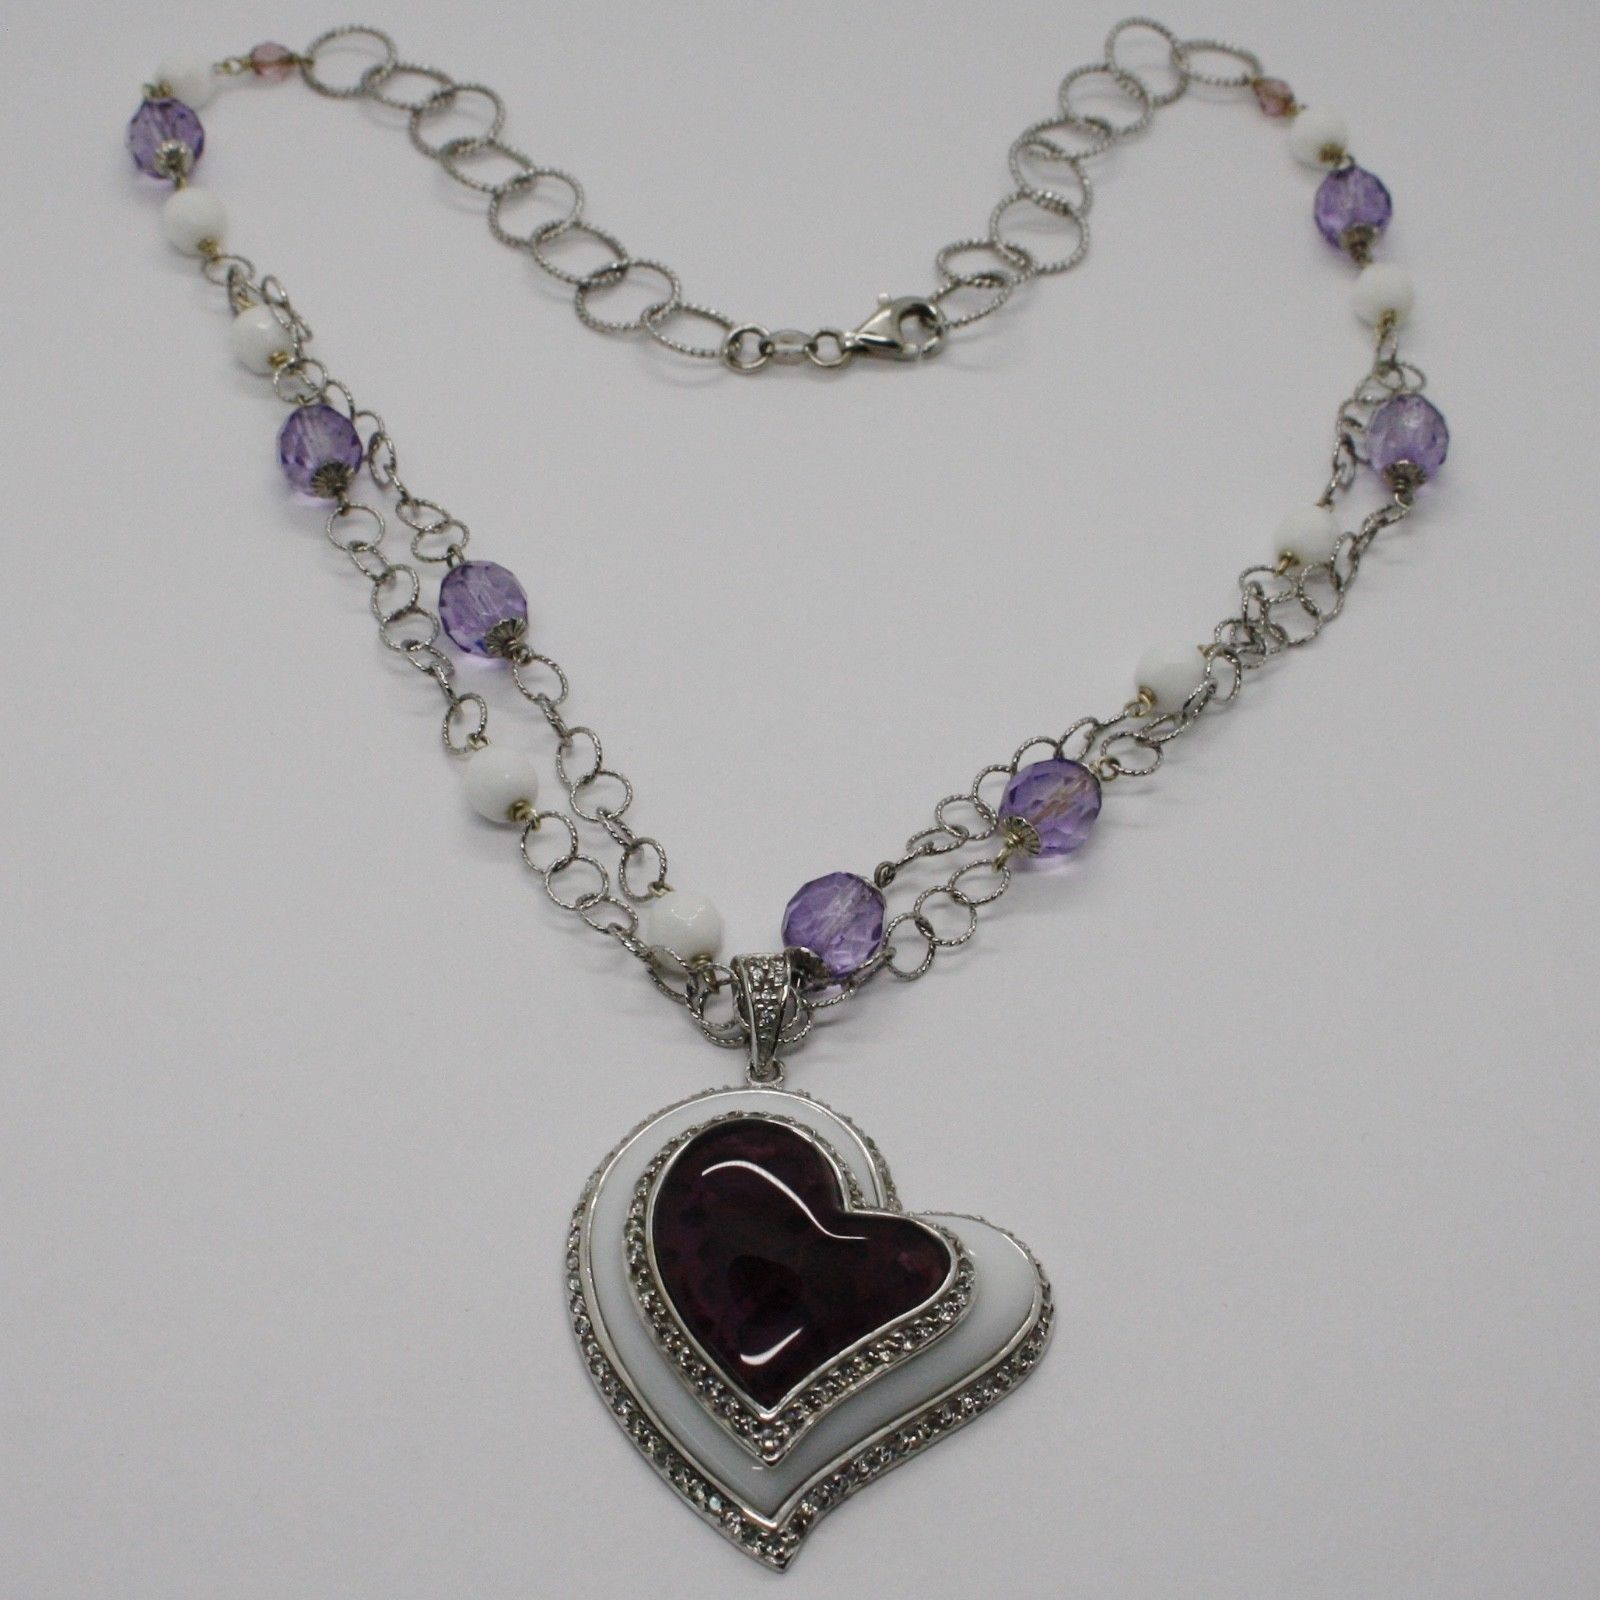 925 Silver Necklace, Amethyst, Agate White, Heart Pendant, Chain two files